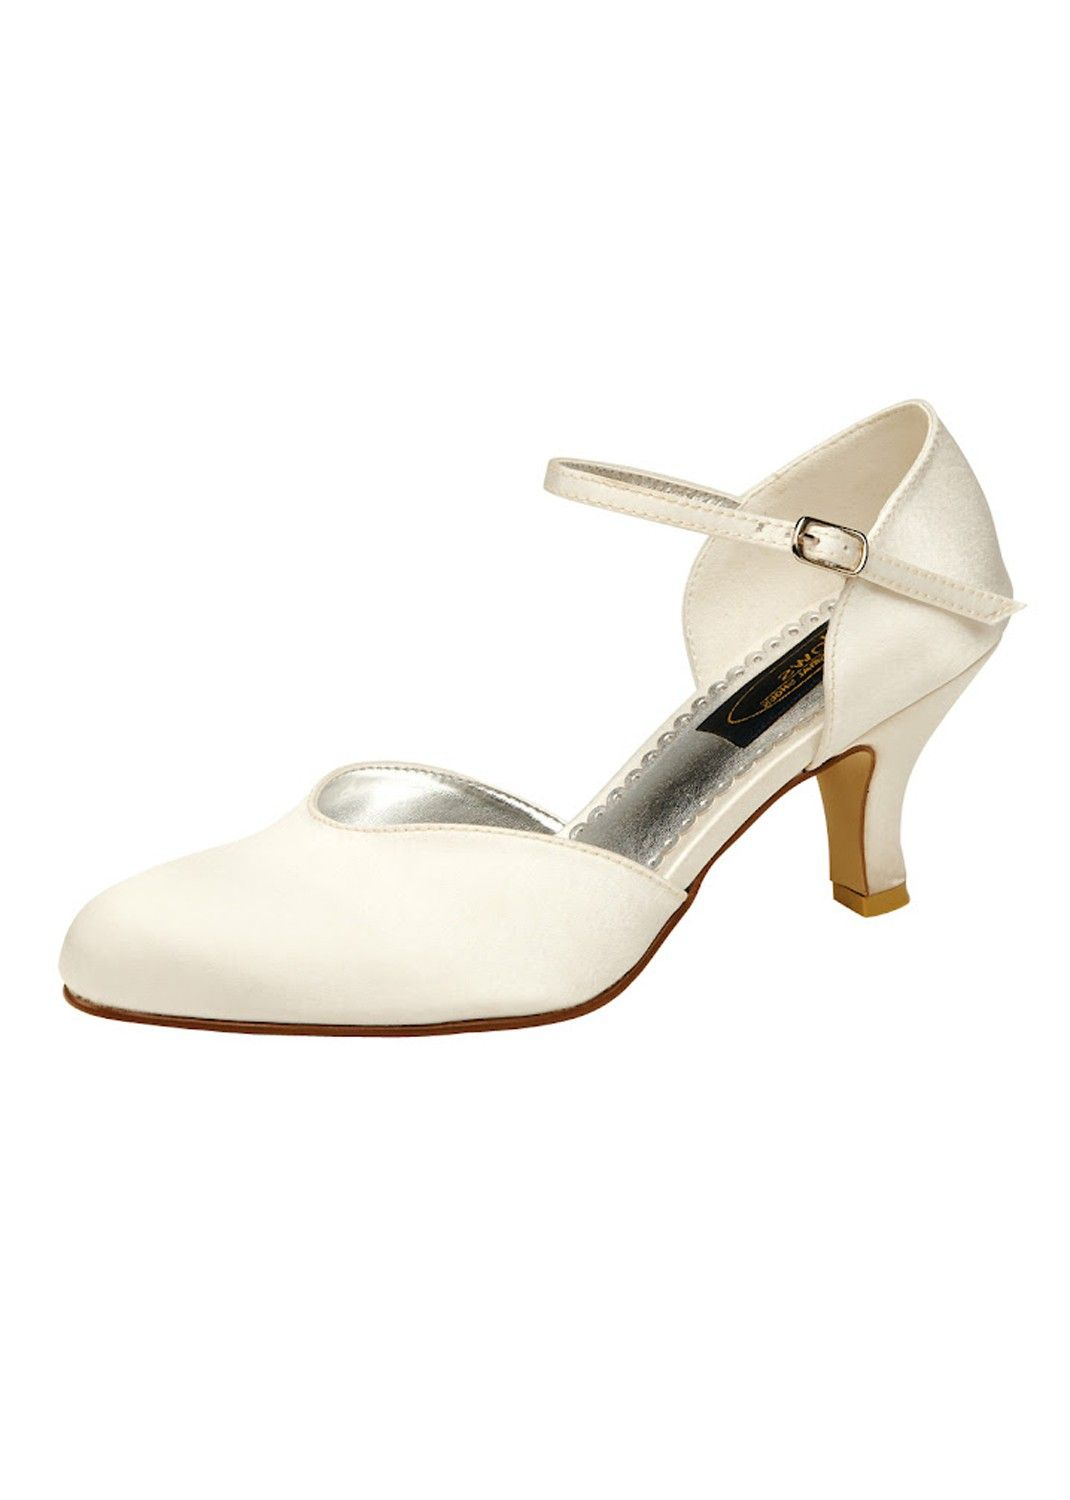 Chaussures mariée Juno ivoire   Chaussures mariage ac0bb8cd292